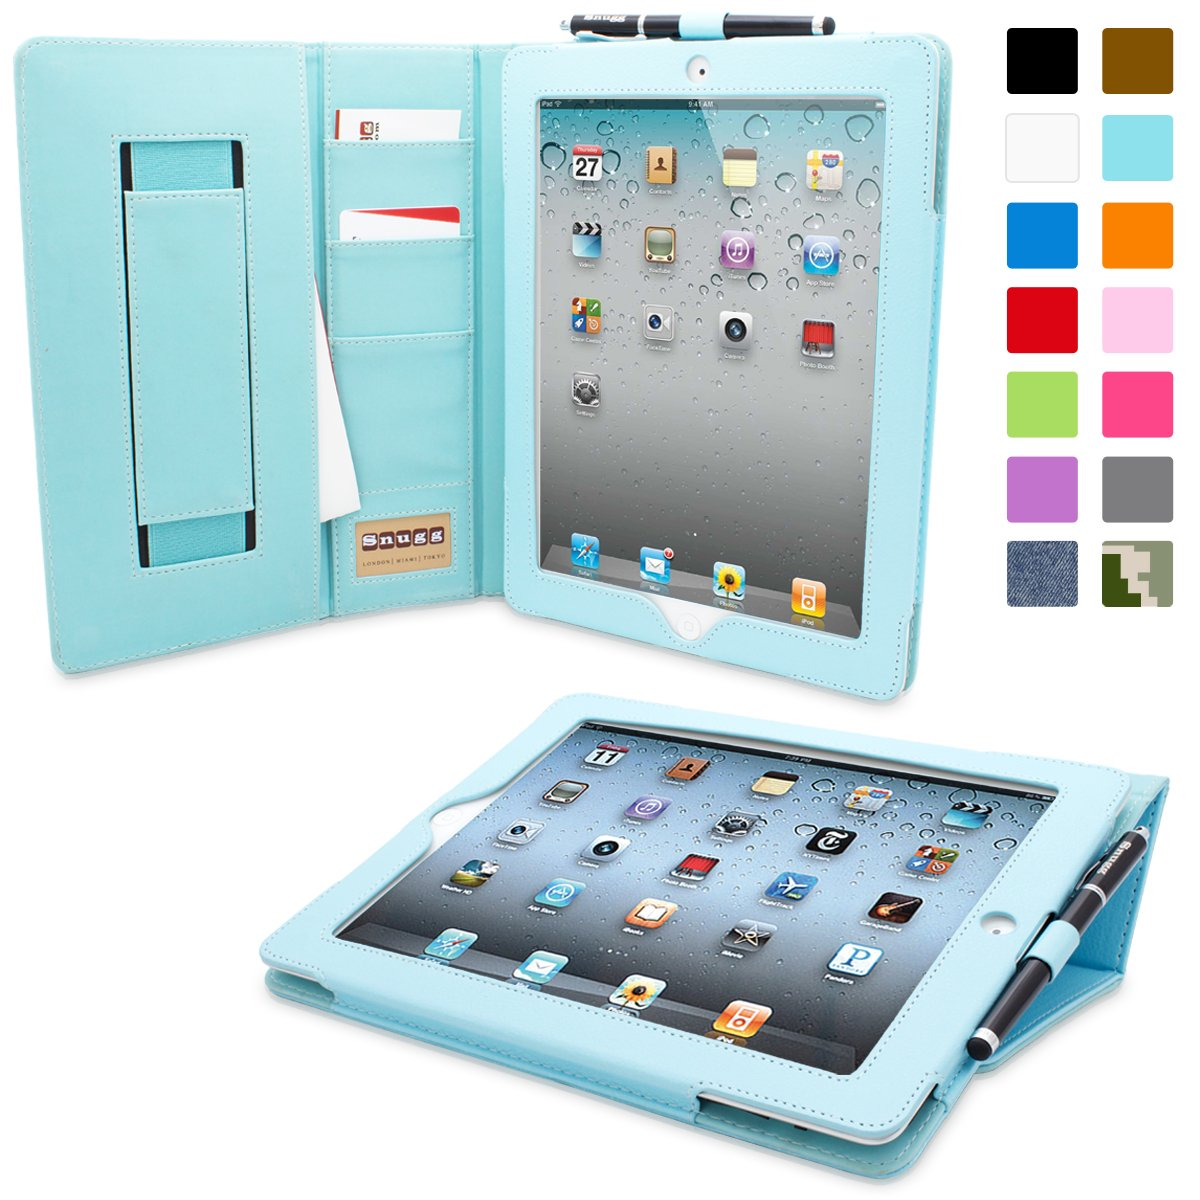 iPad 2 Case, Snugg Executive Baby Blue Leather Smart Case Cover Apple iPad 2 Protective Flip Stand Cover With Auto Wake/Sleep B00D2R3U6Y